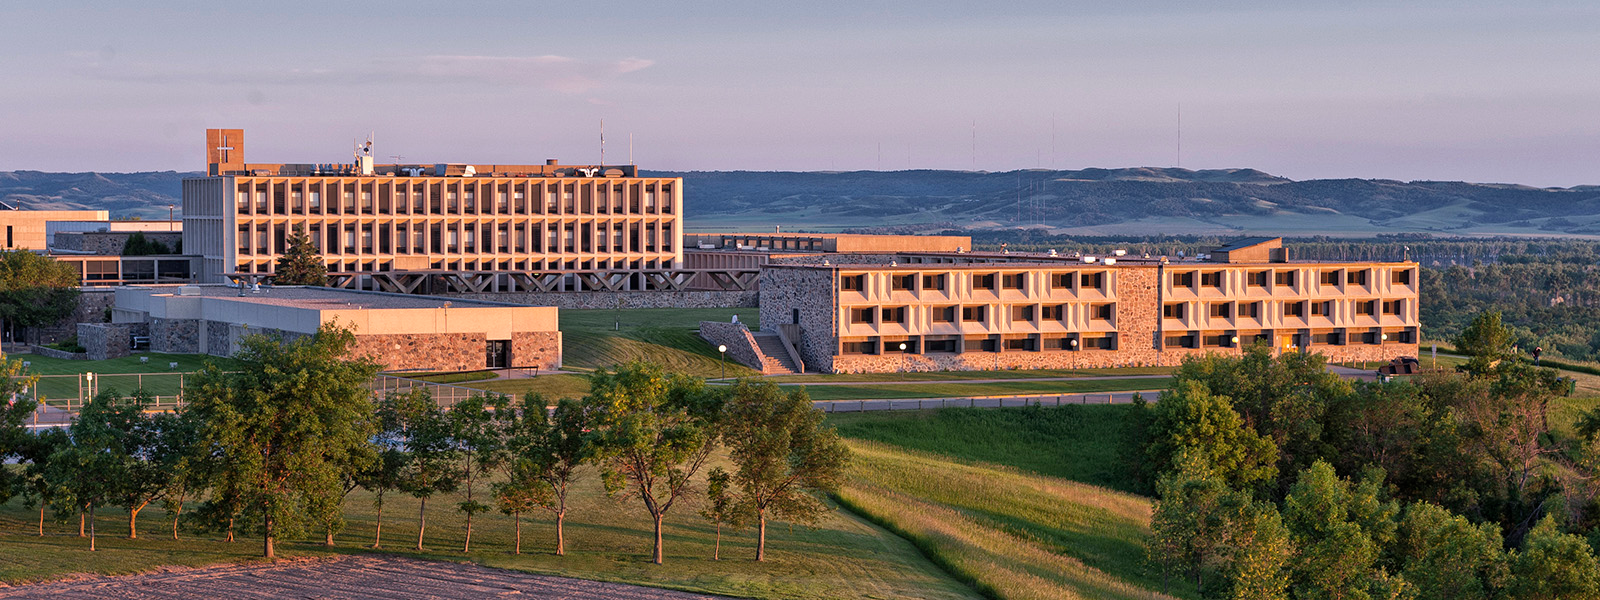 University of Mary - Bismarck, North dakota